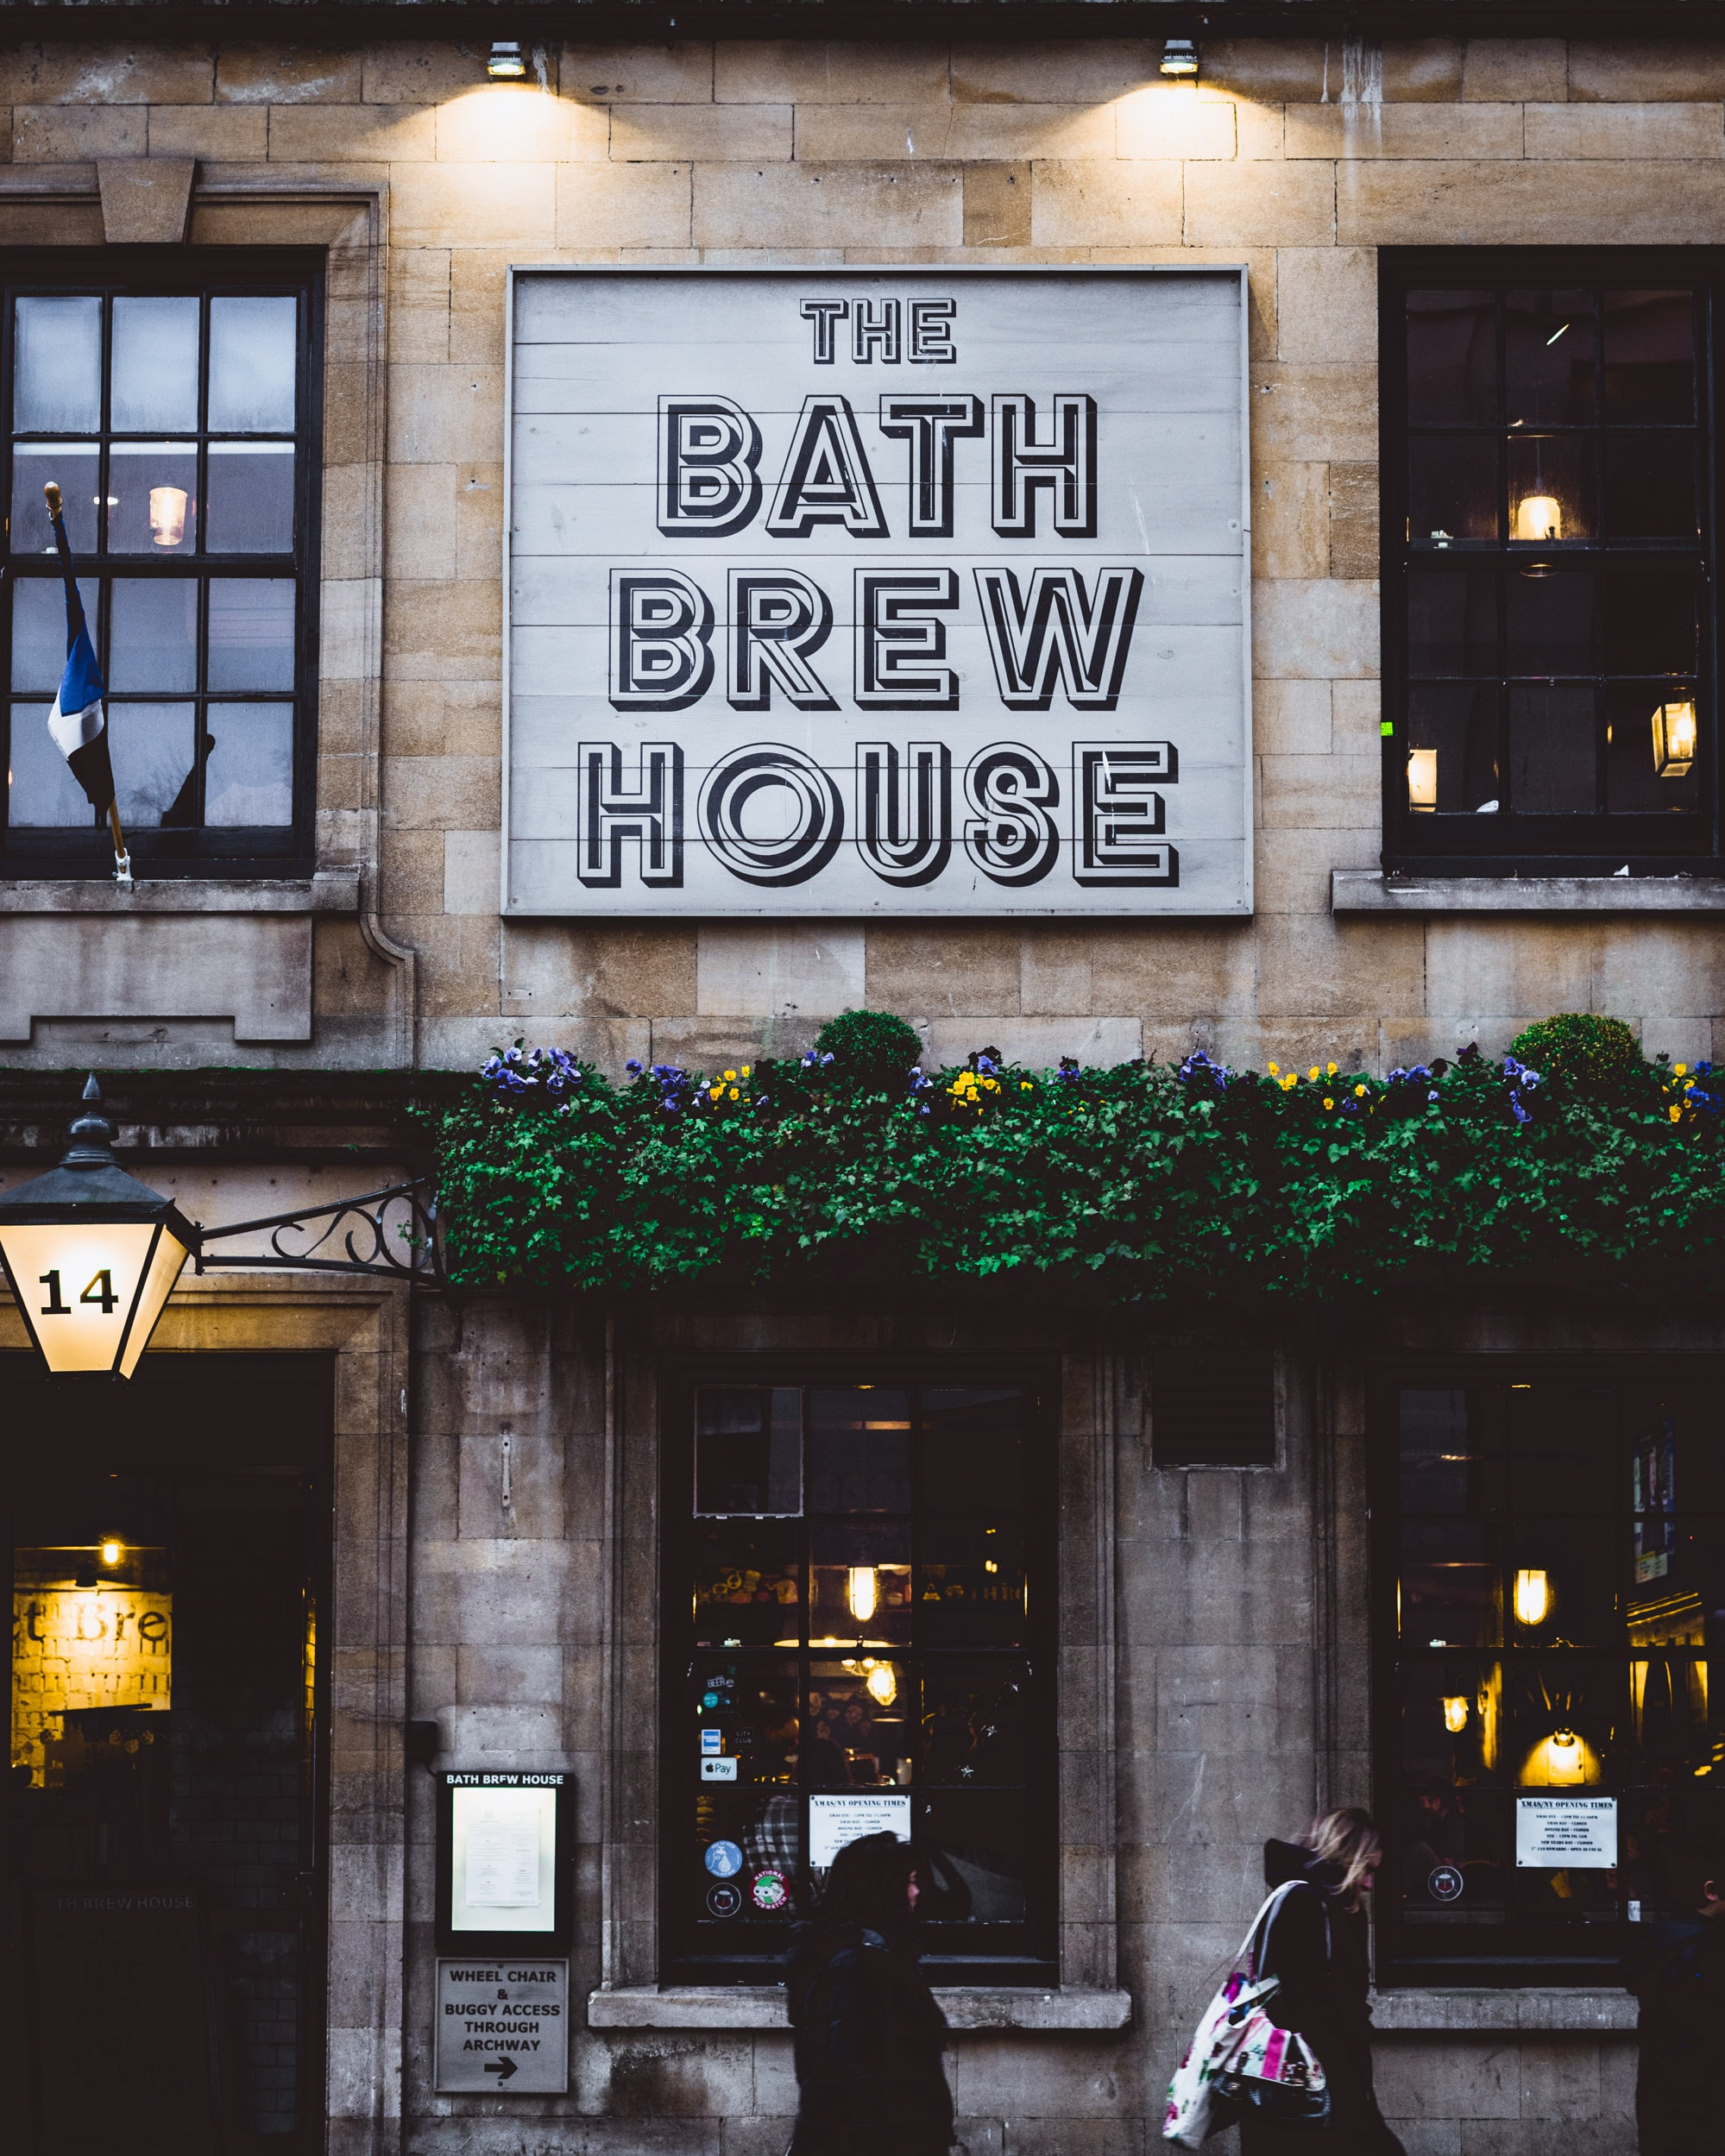 The Bath Brew House signage